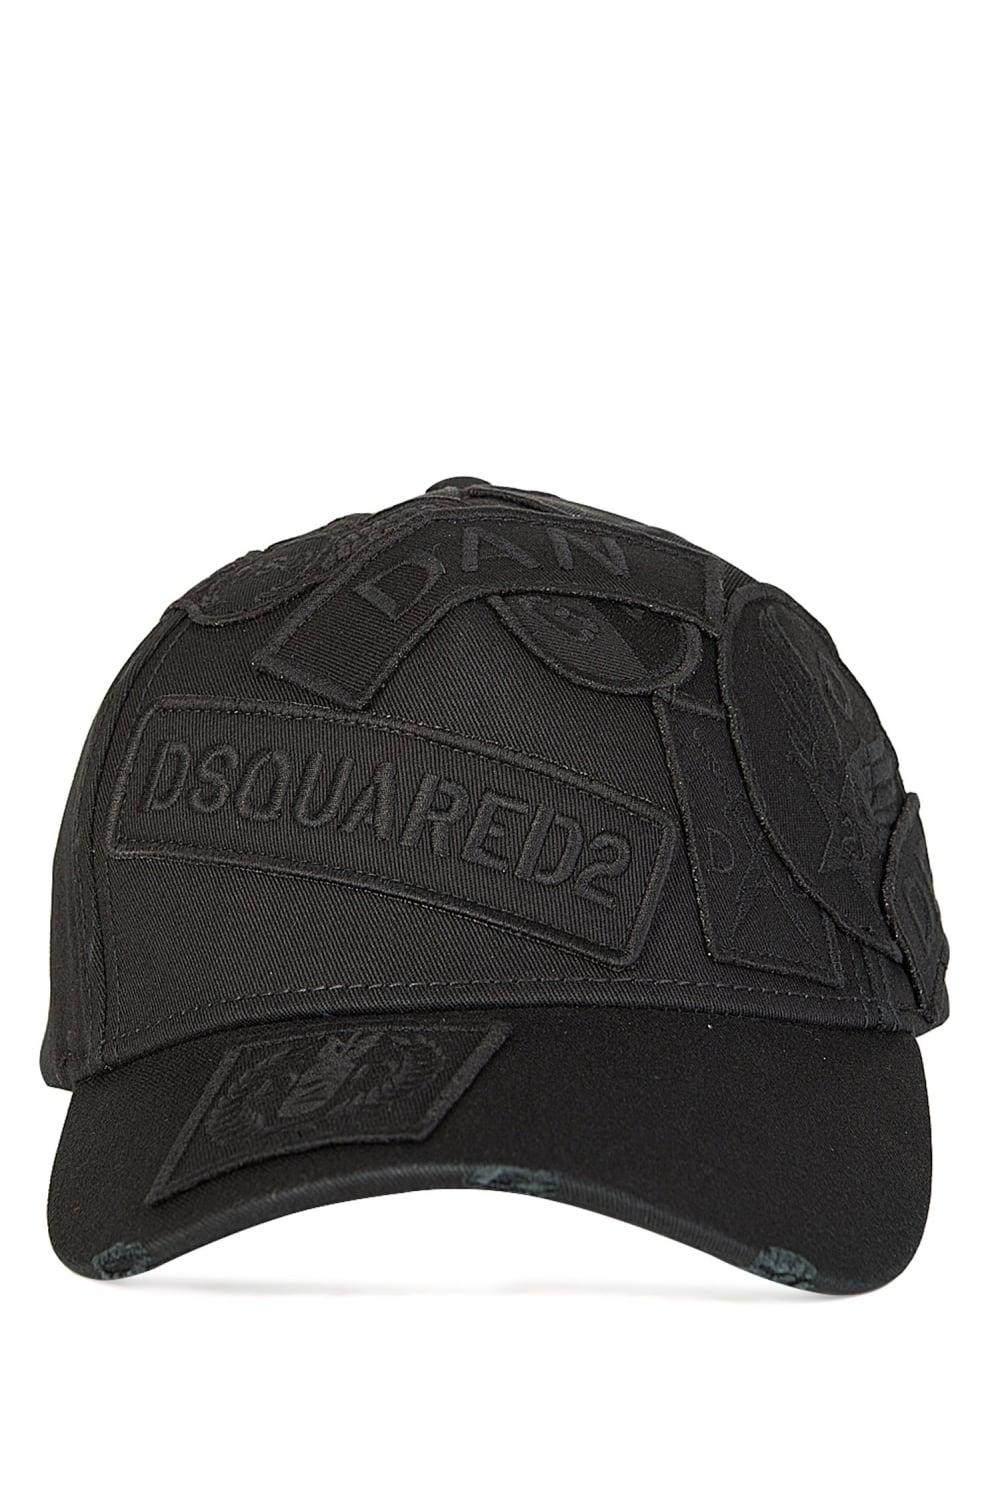 Dsquared2 Dsquared Tonal Patches Cap Clothing From